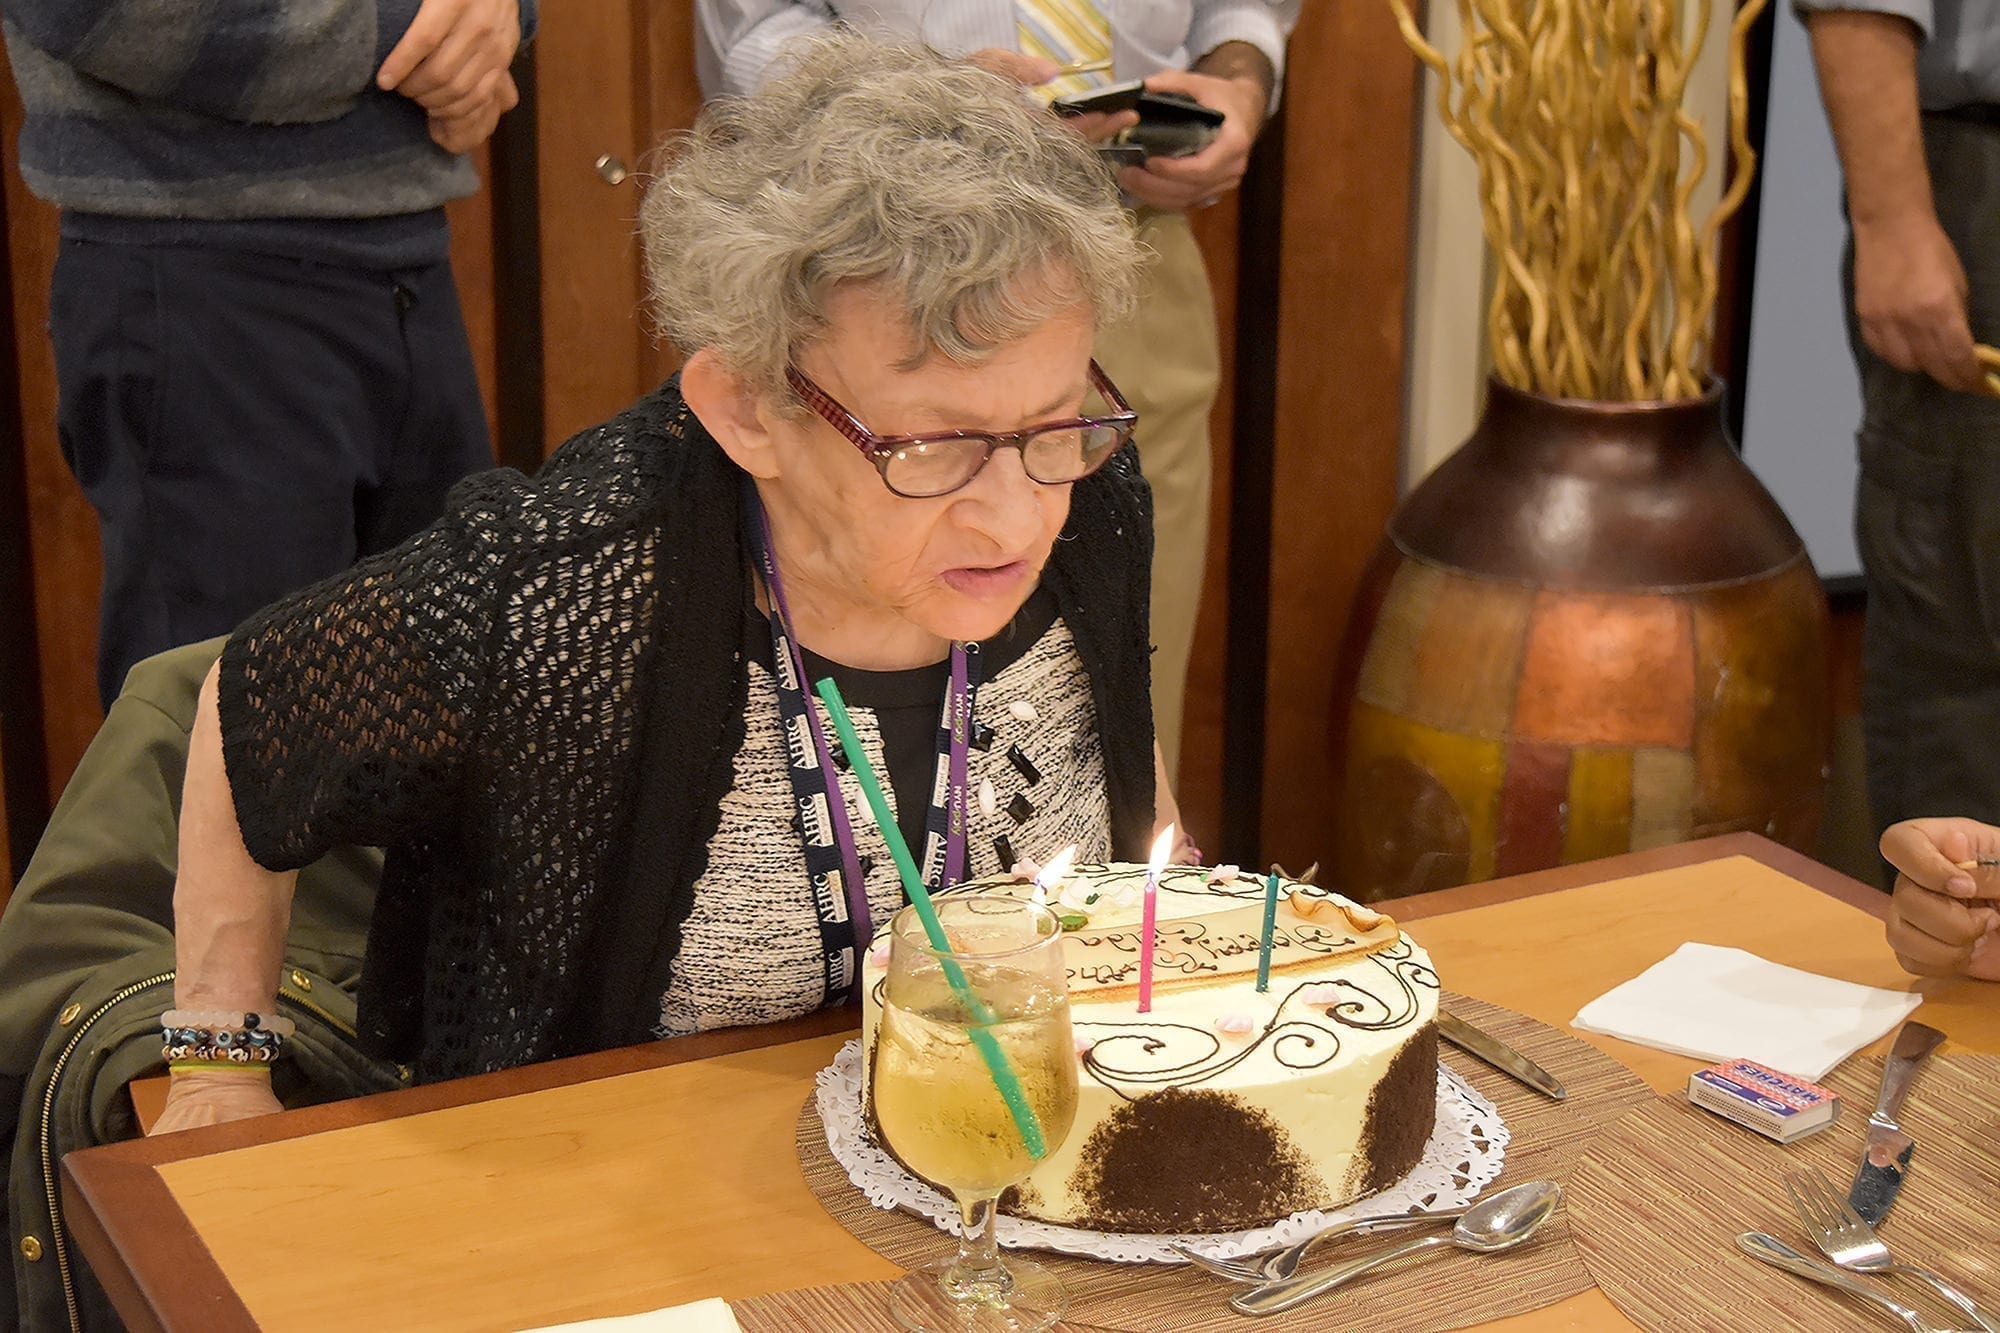 Gilda's 80th Birthday Bash | AHRC New York City